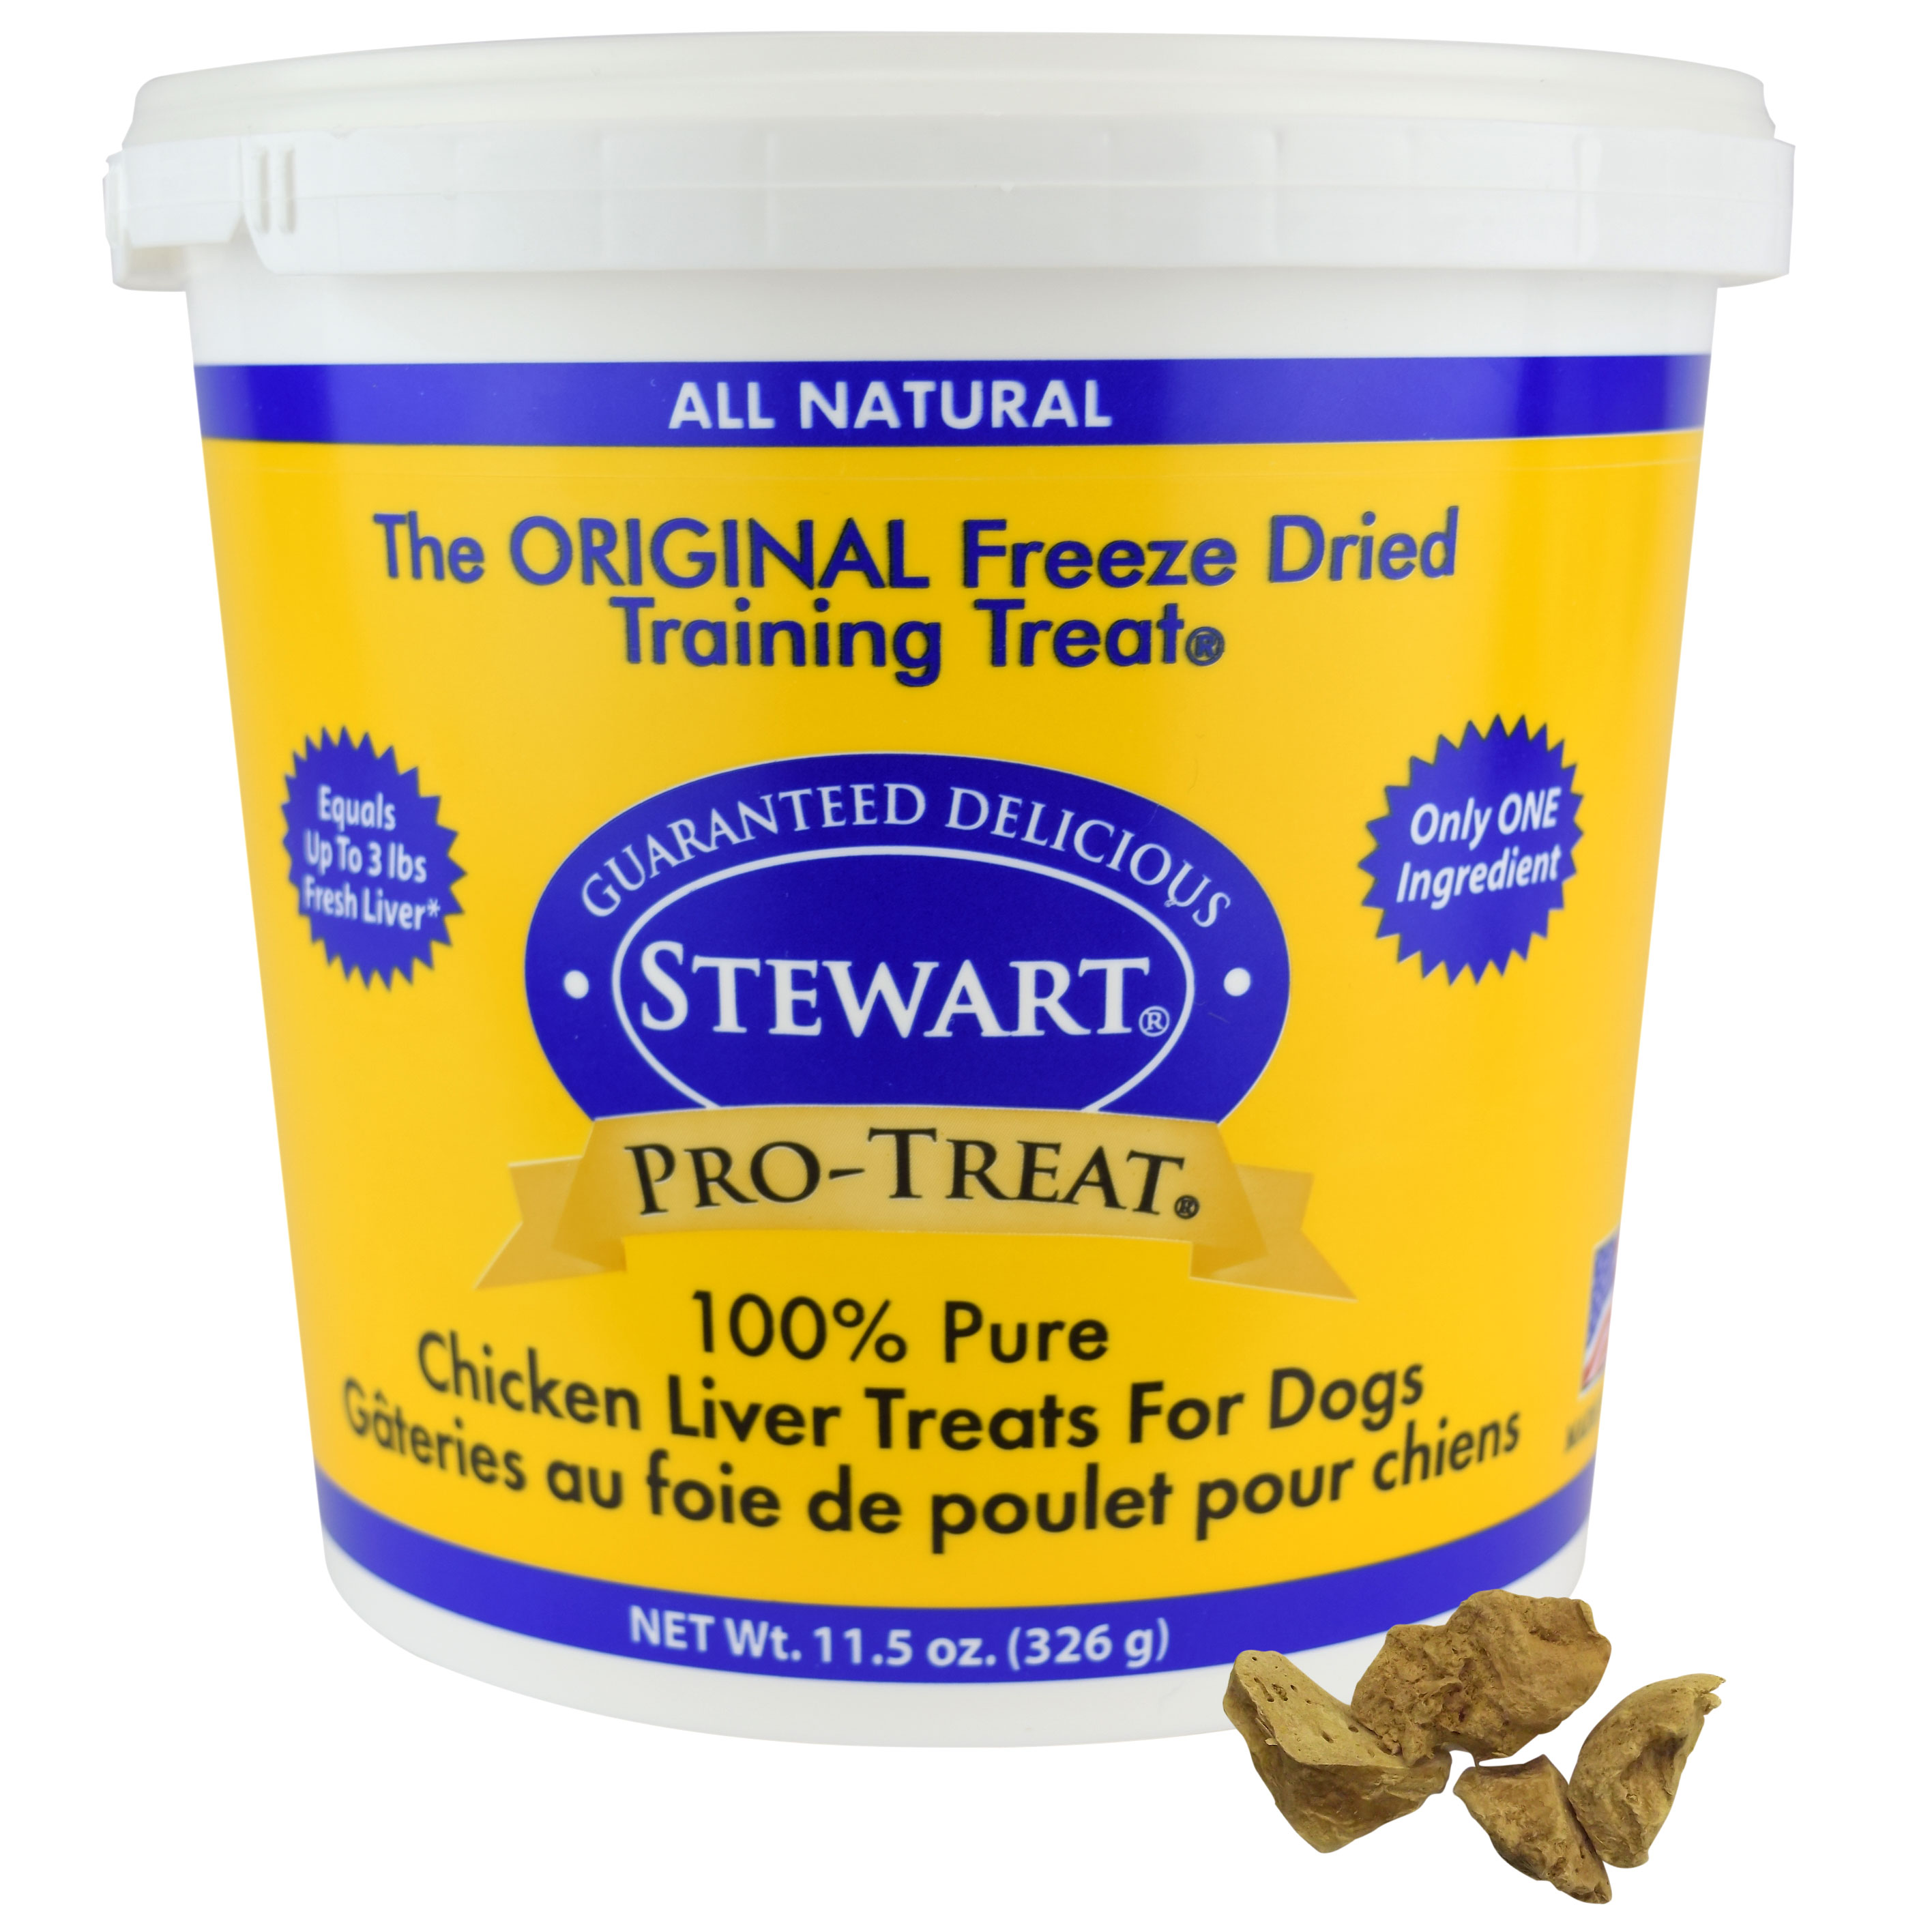 Stewart Freeze Dried Chicken Liver by Pro-Treat, 11.5 oz. Tub